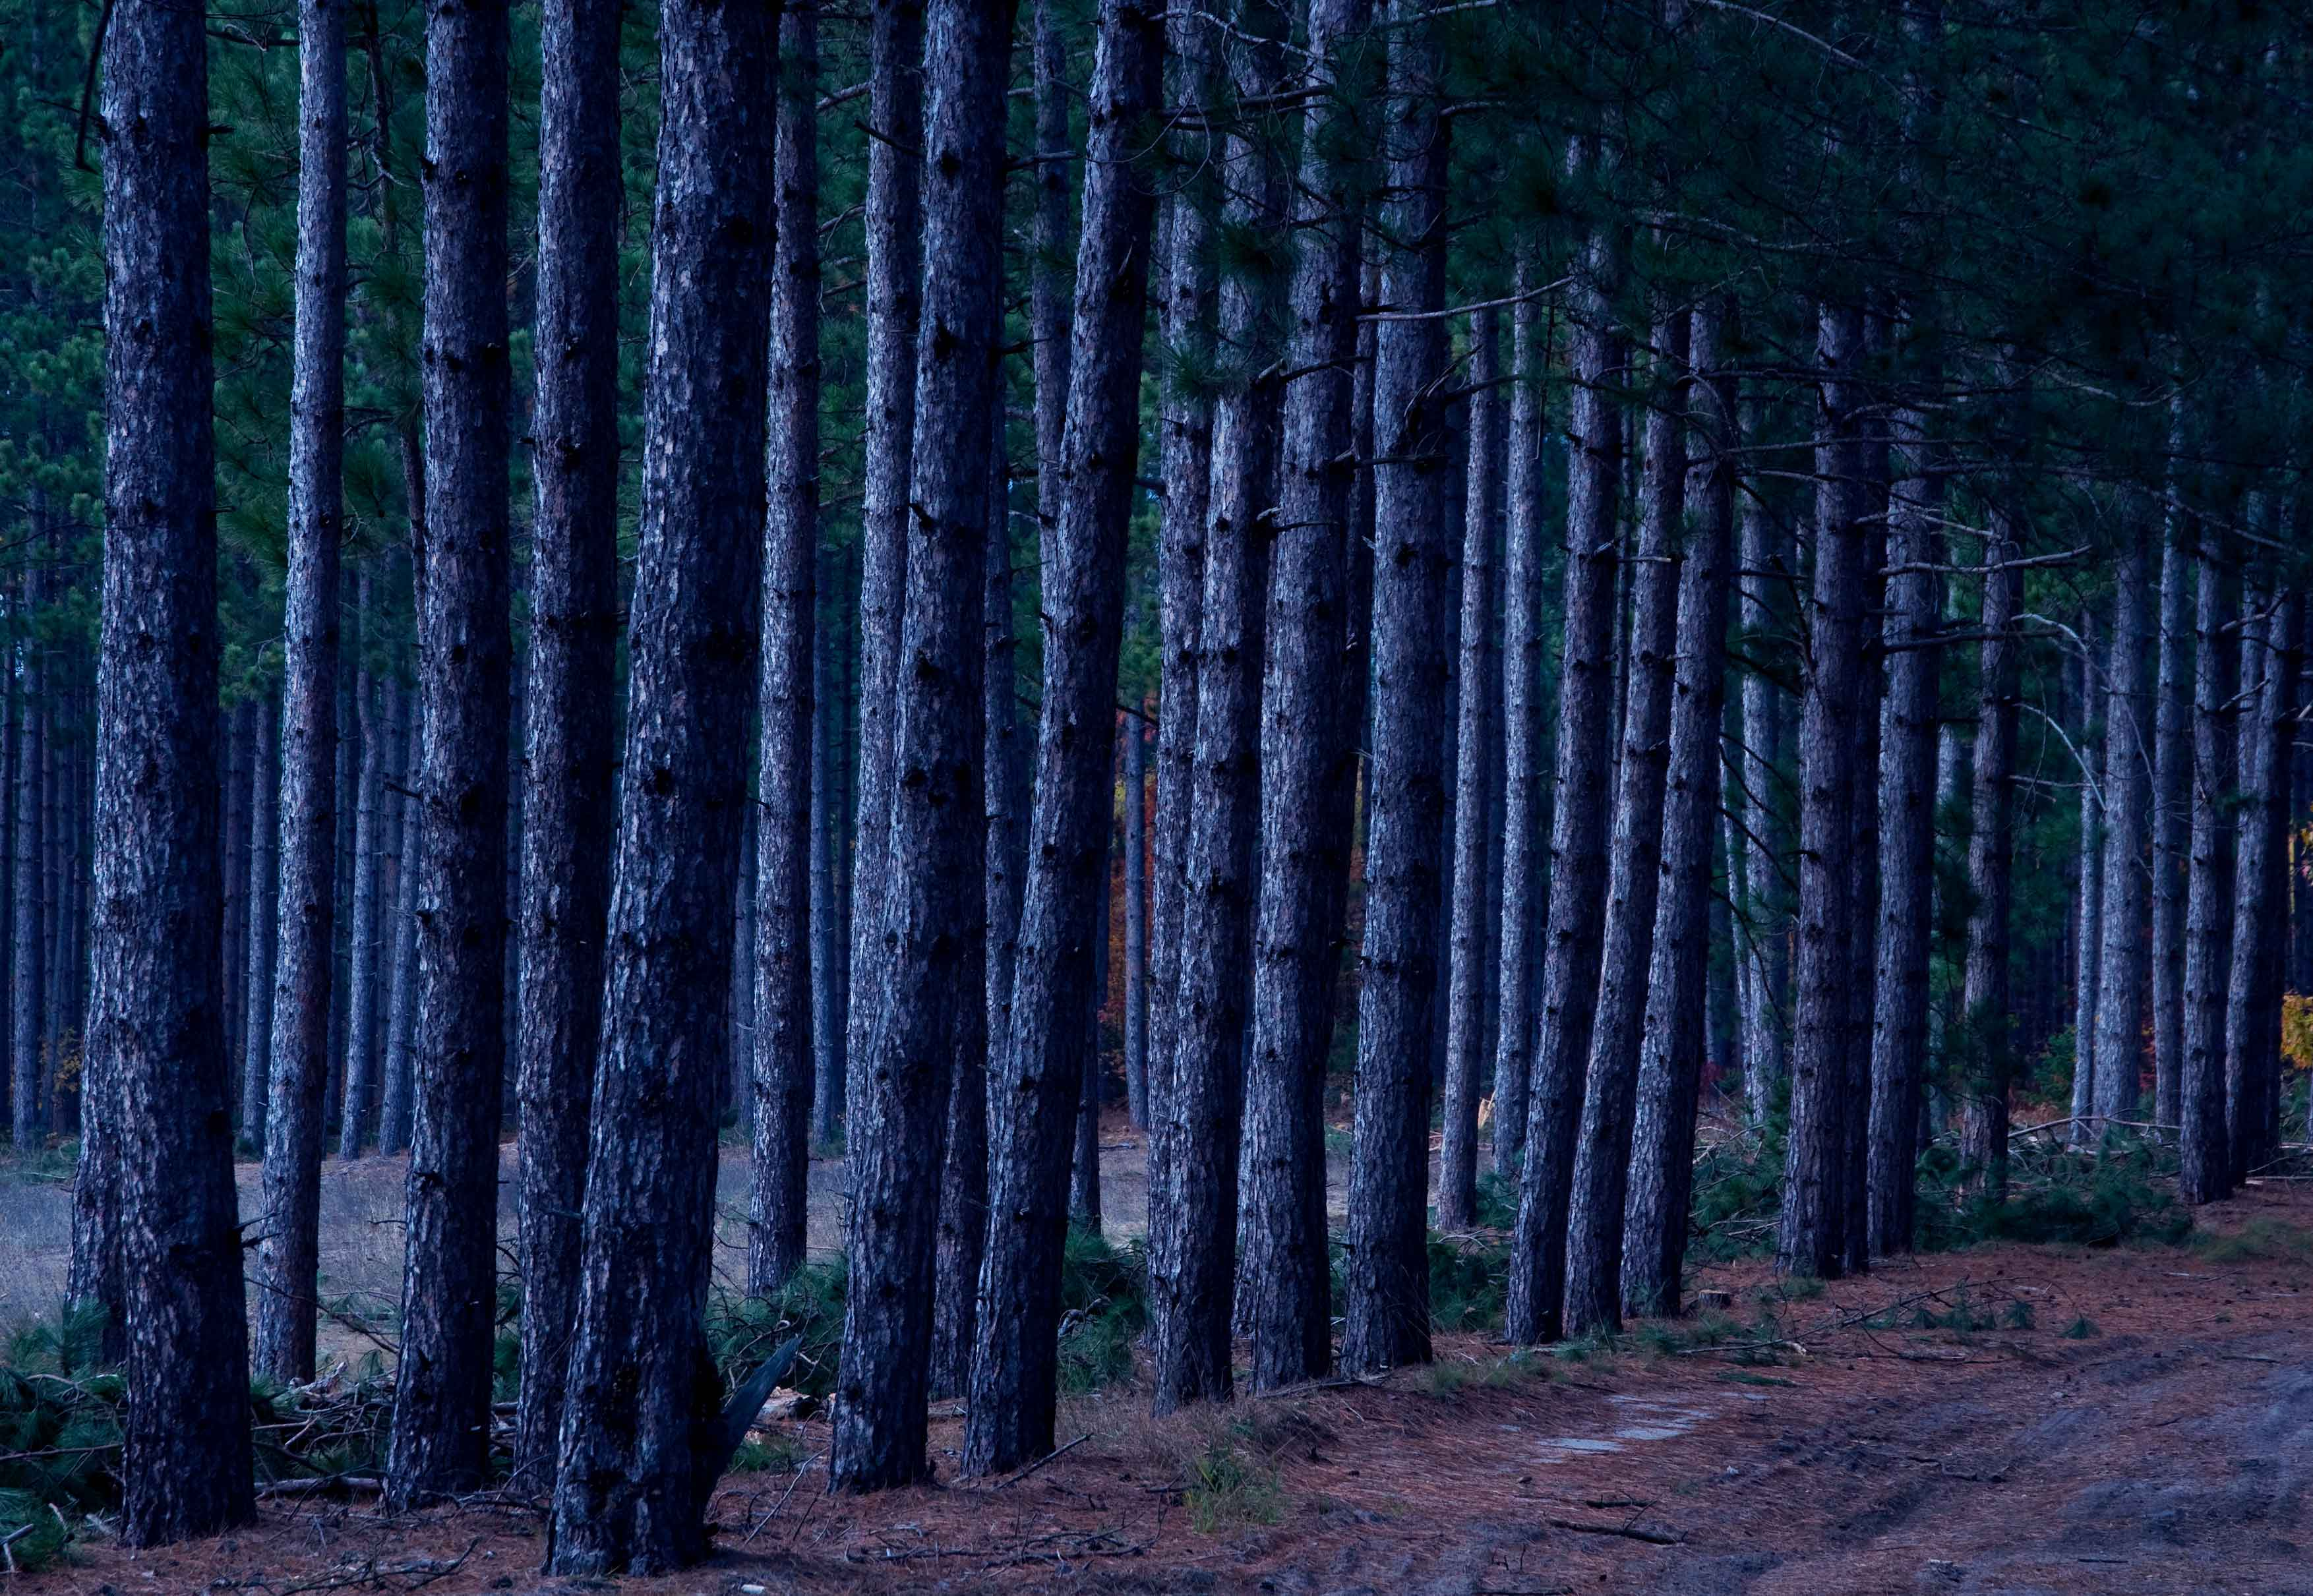 Pine trees in Crawford County, Michigan